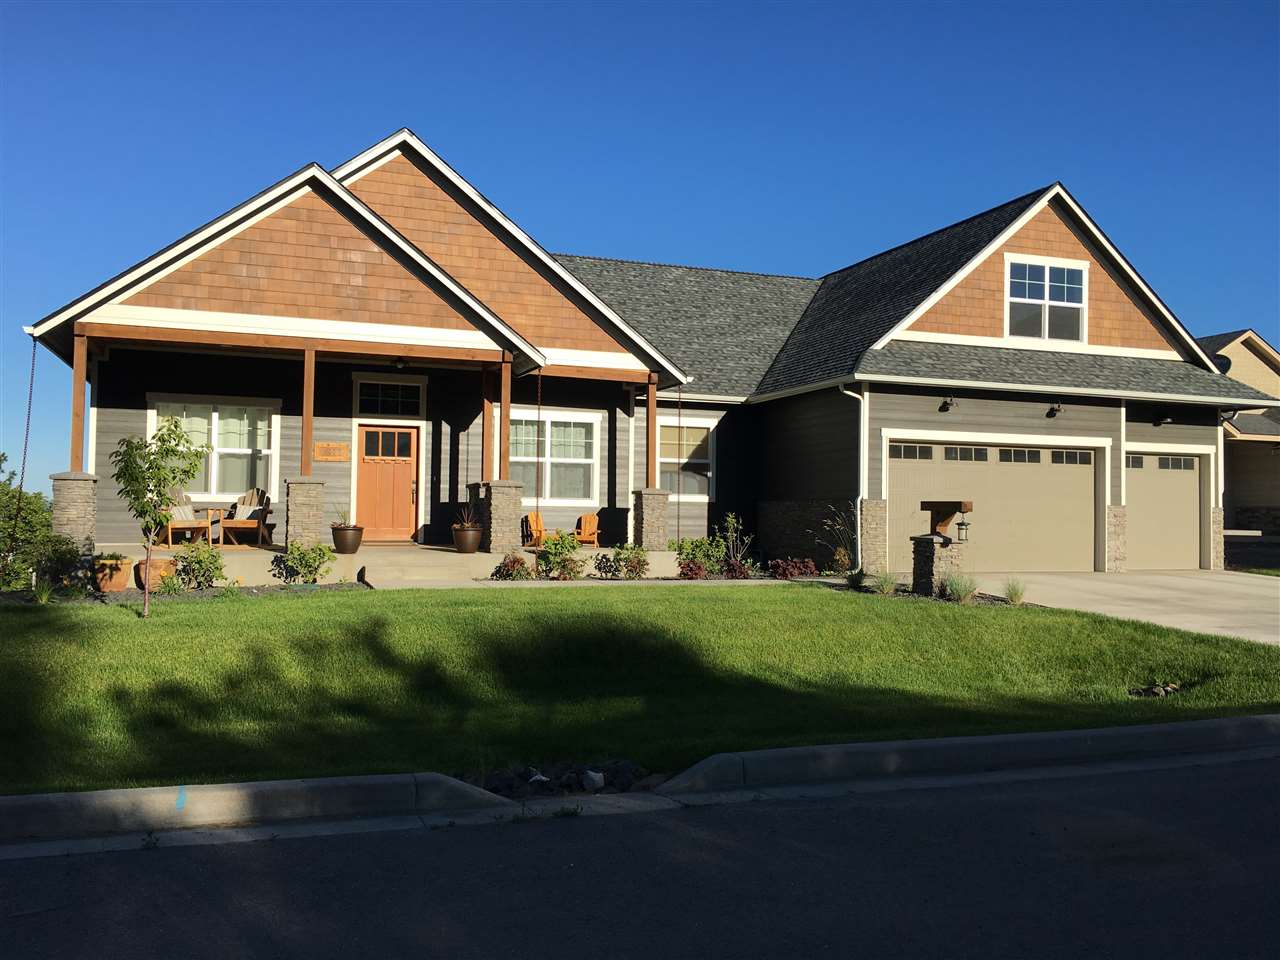 Single Family Home for Sale at 1109 N COURTNEY Court 1109 N COURTNEY Court Medical Lake, Washington 99022 United States